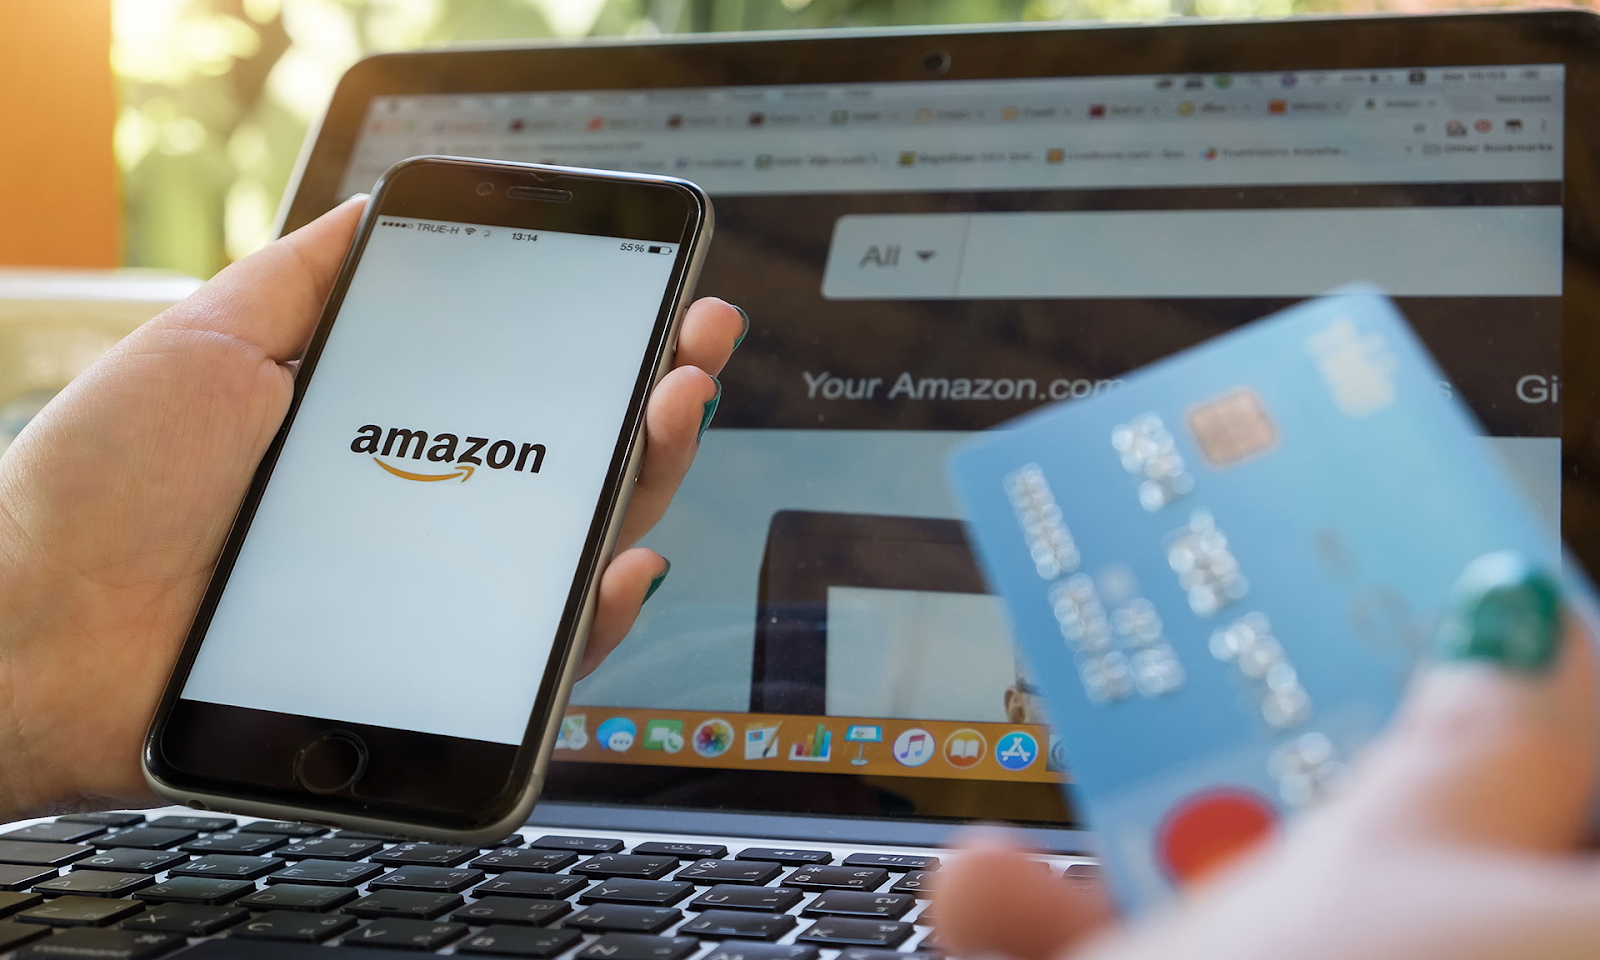 How Do I Get The Best Deal On Amazon? Amazon Coupons 1